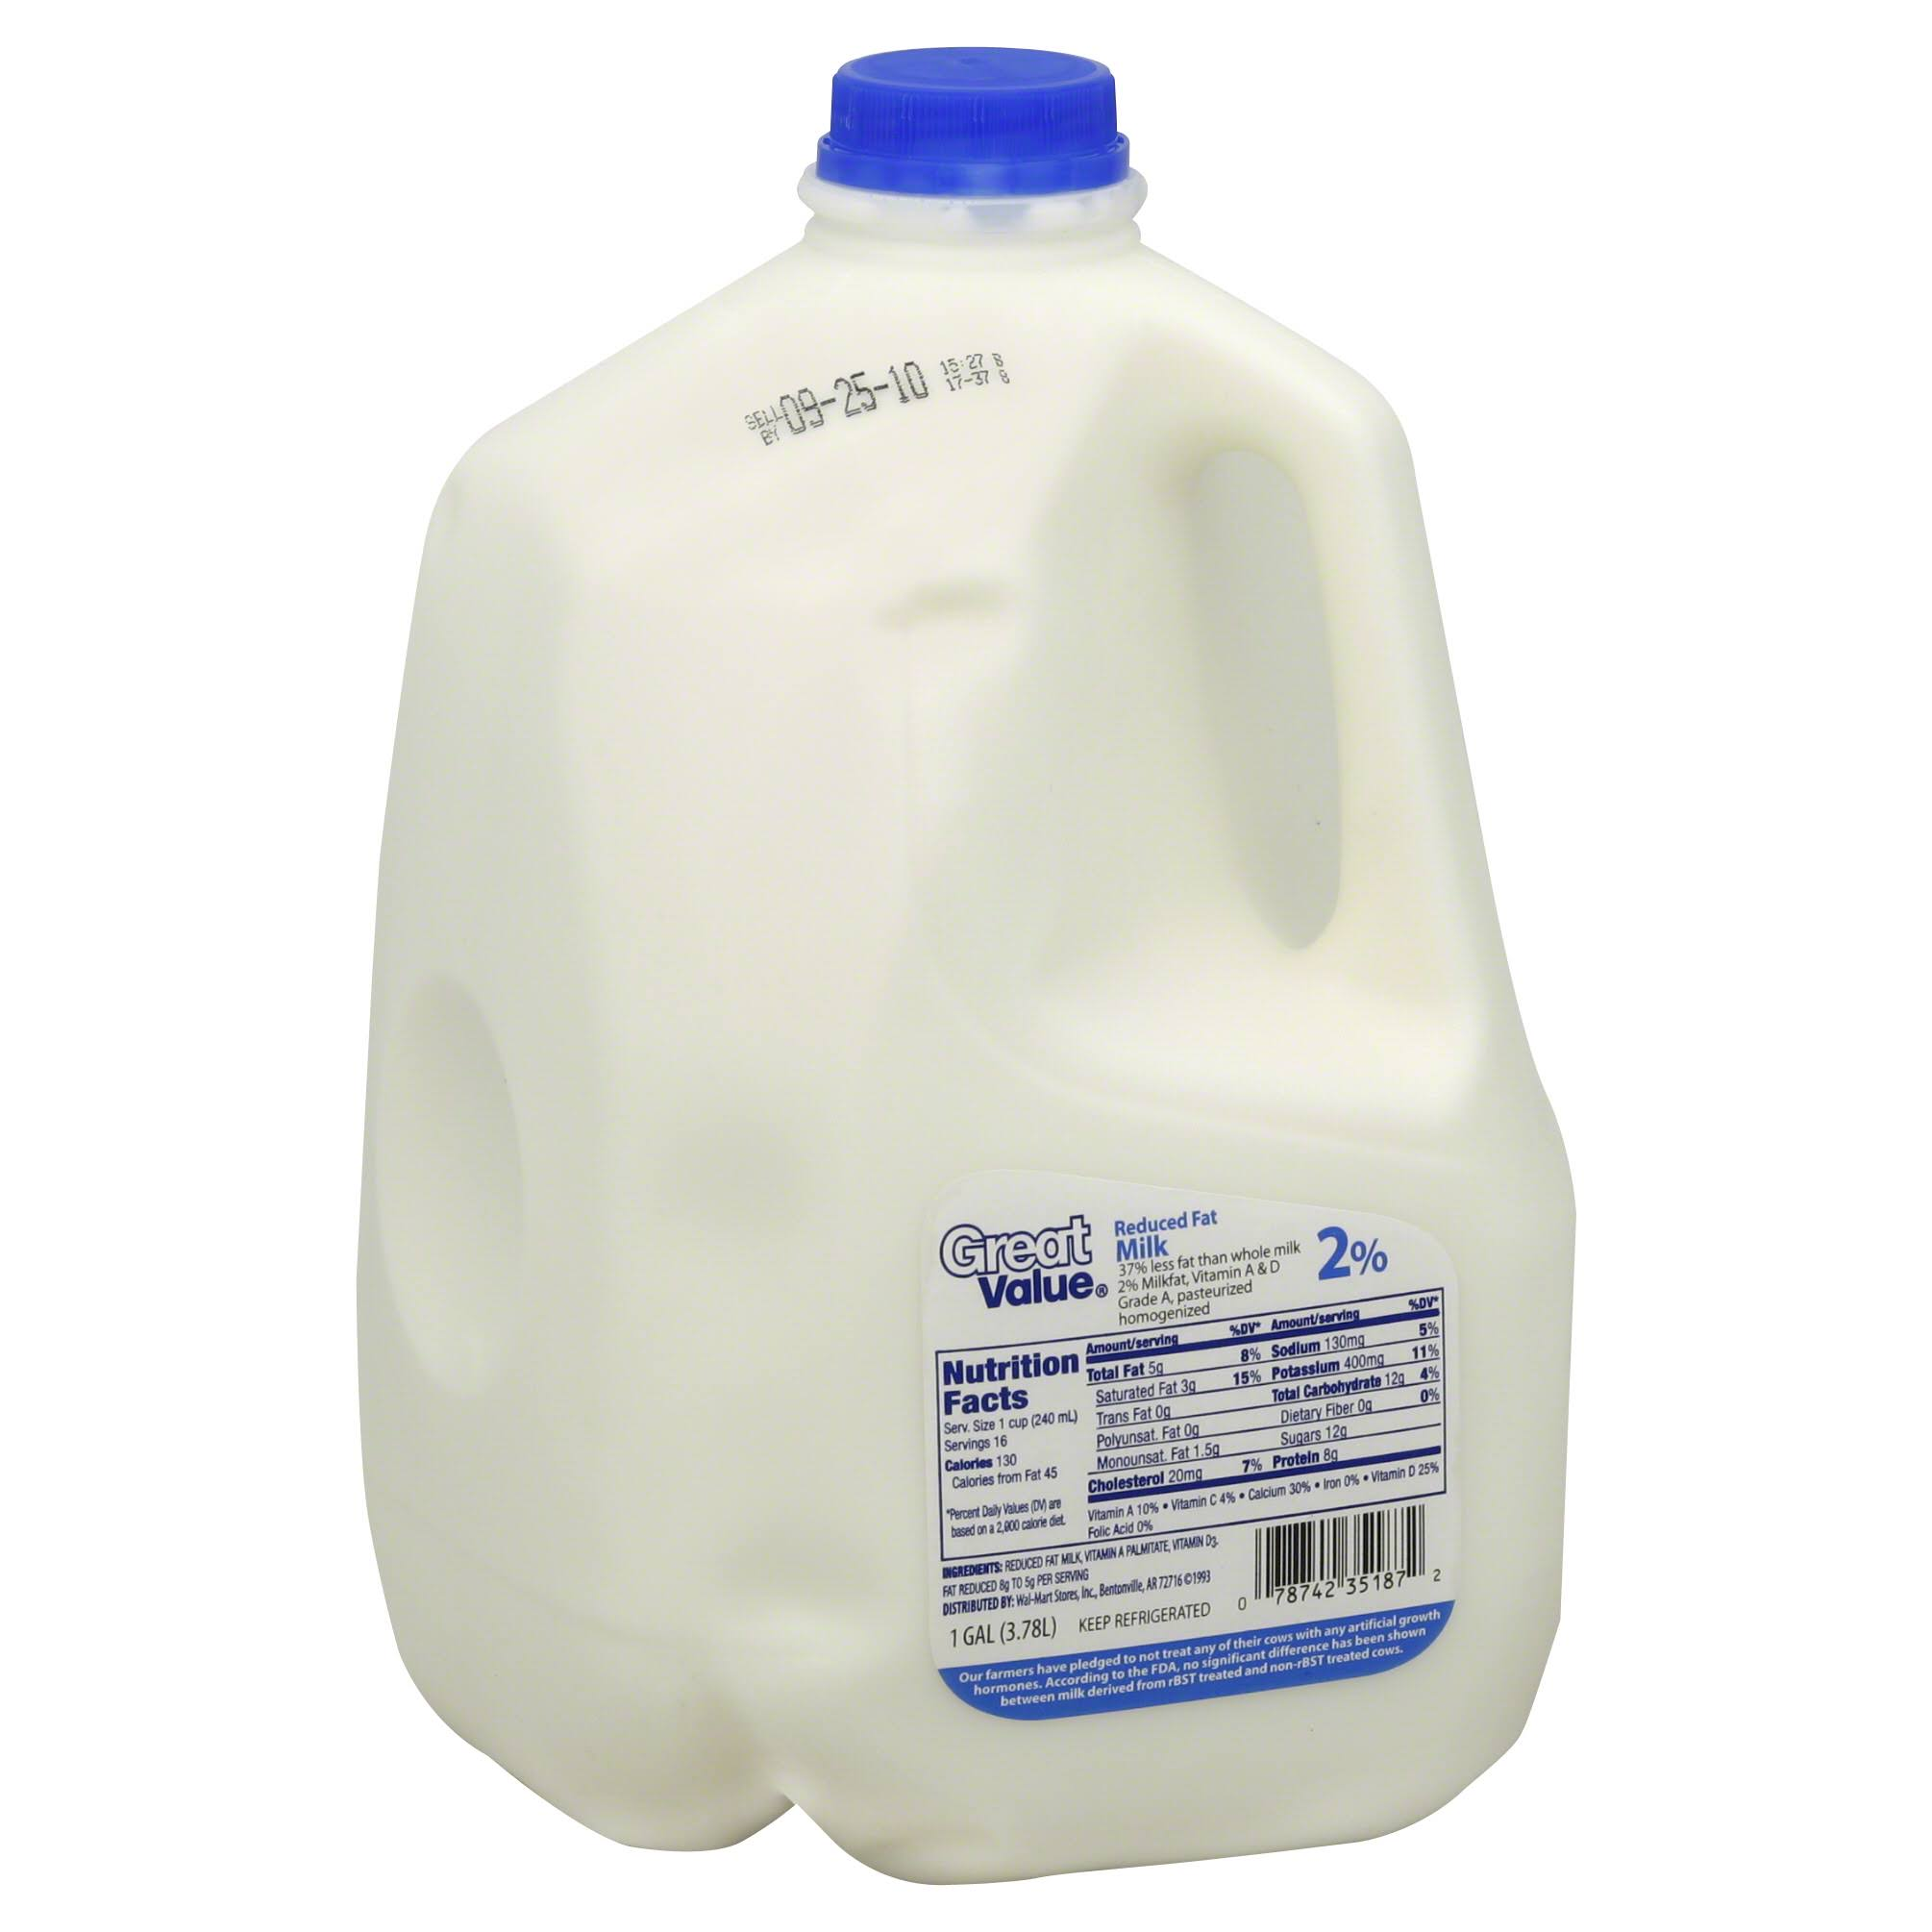 Great Value 2 Percent Reduced Fat Milk - 1gal